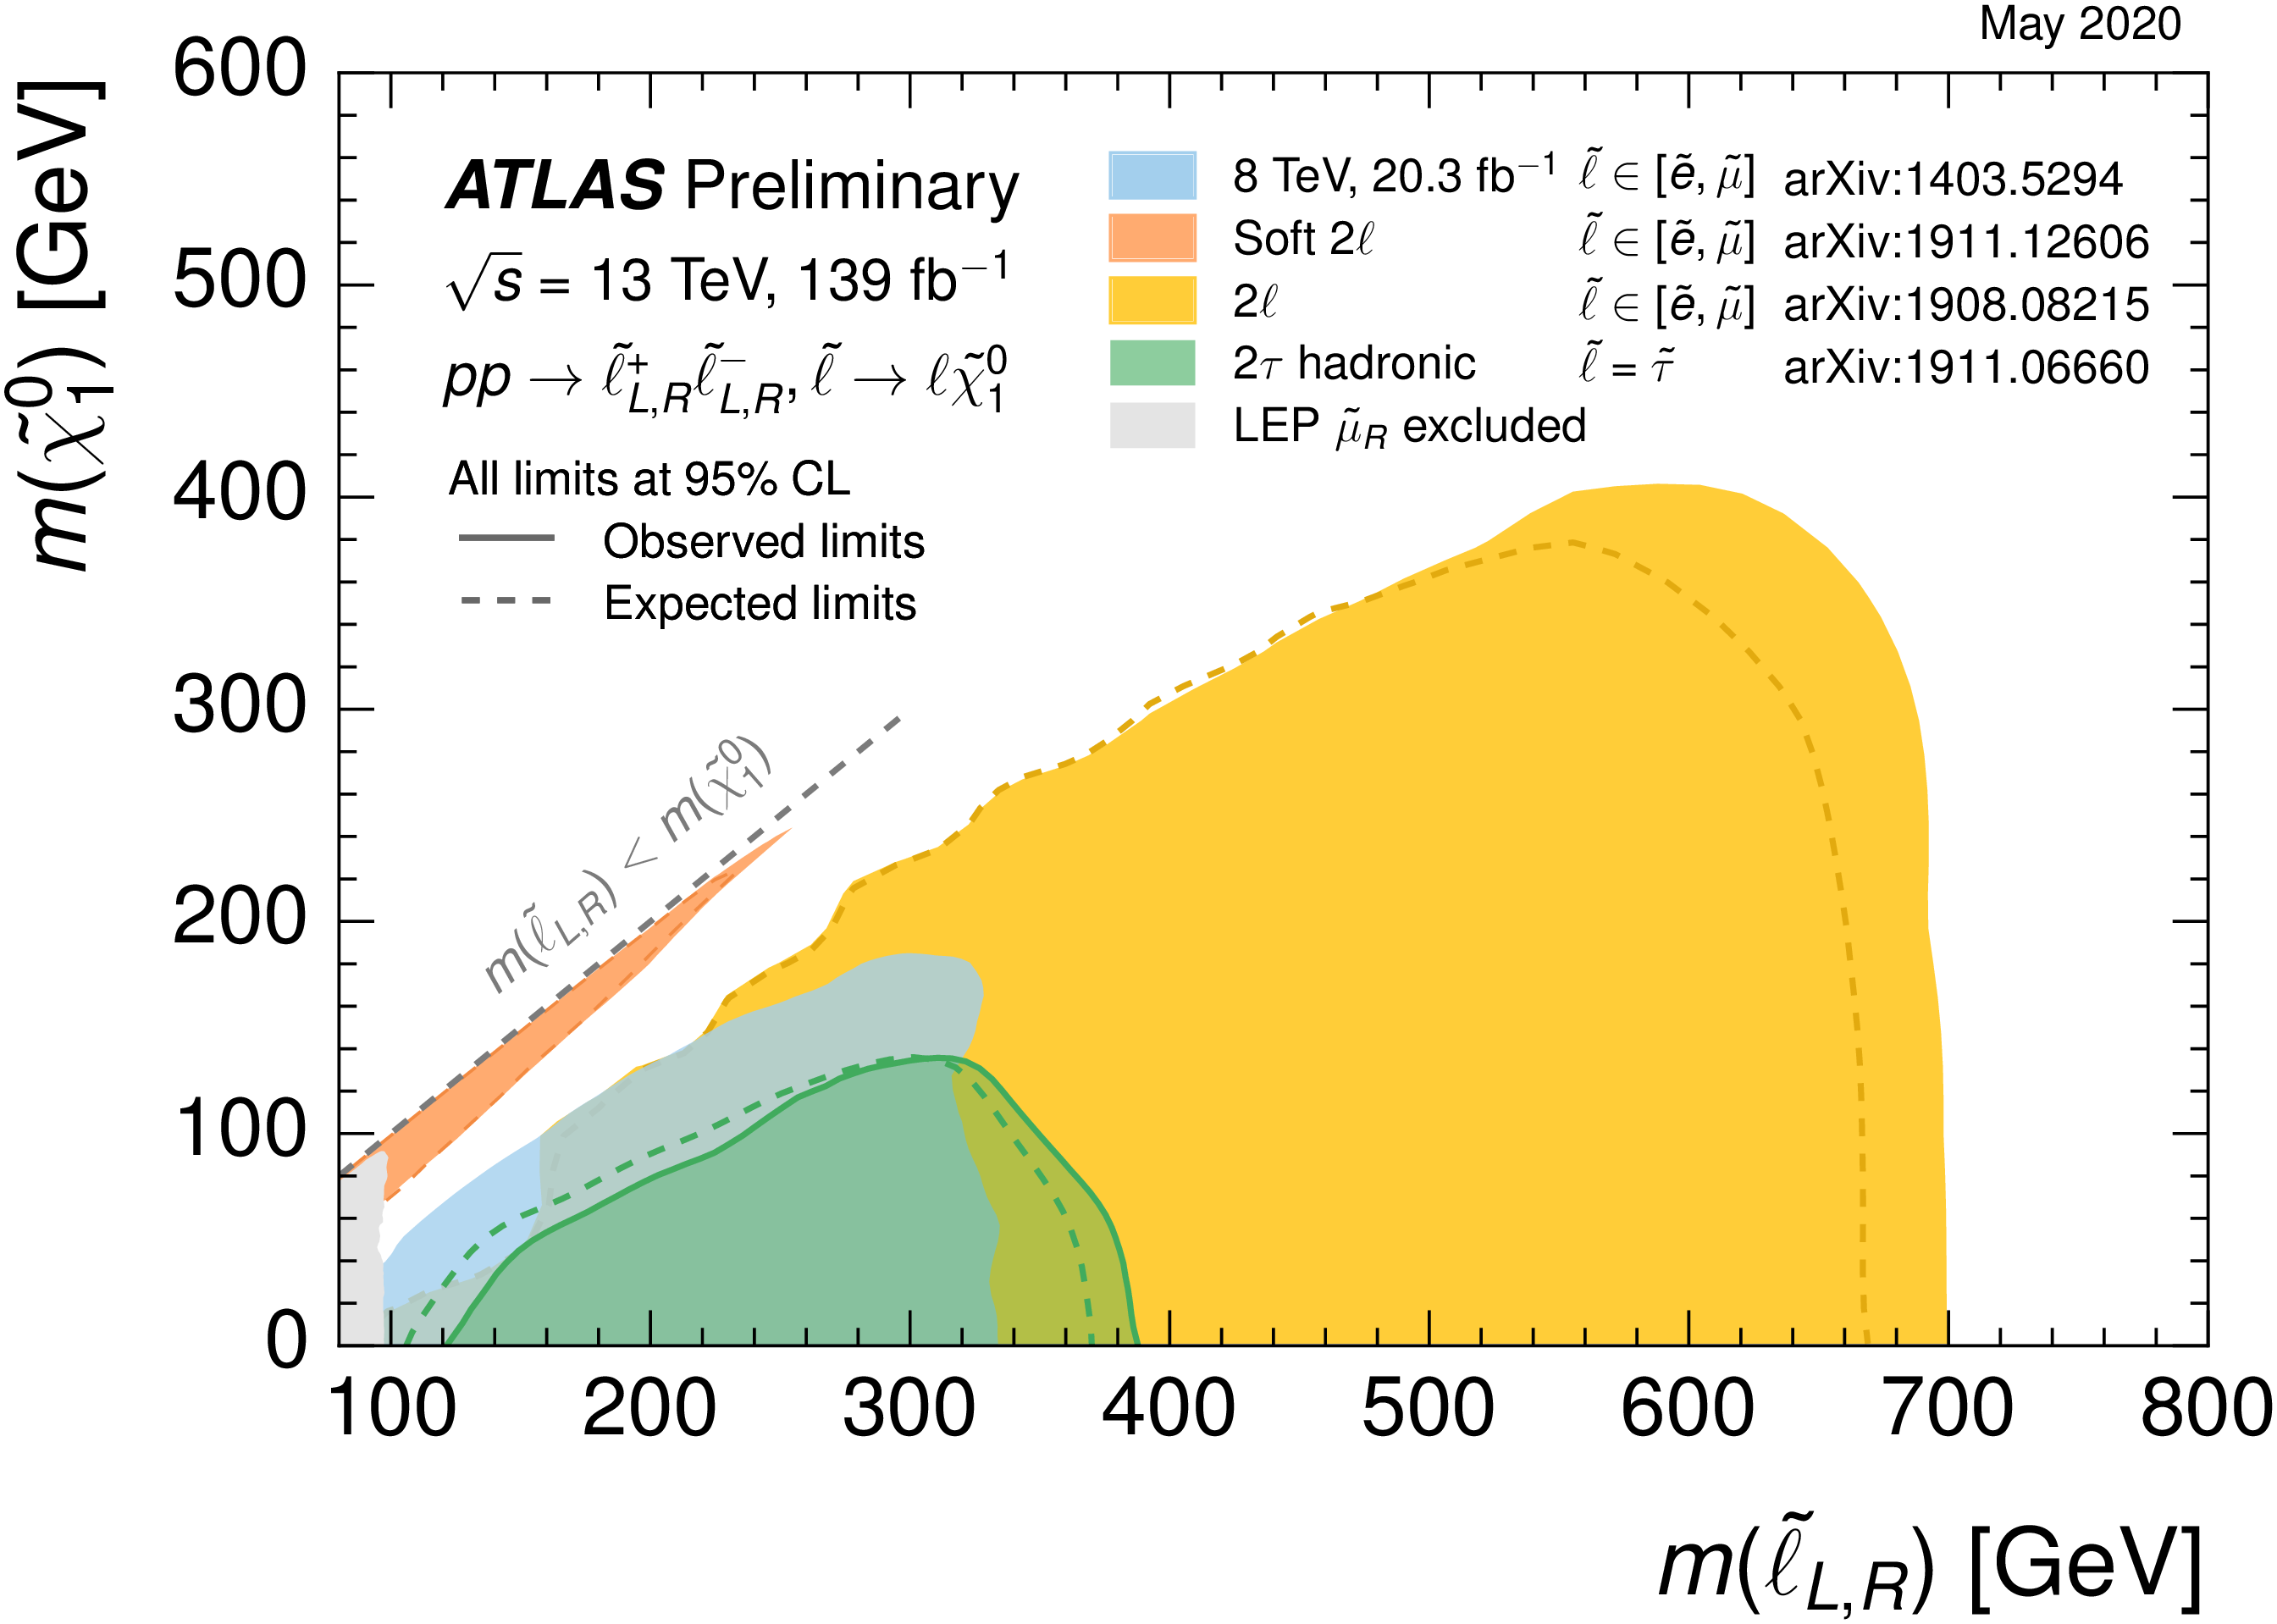 https://atlas.web.cern.ch/Atlas/GROUPS/PHYSICS/CombinedSummaryPlots/SUSY/ATLAS_SUSY_EWSummary_directsleptons/ATLAS_SUSY_EWSummary_directsleptons.png